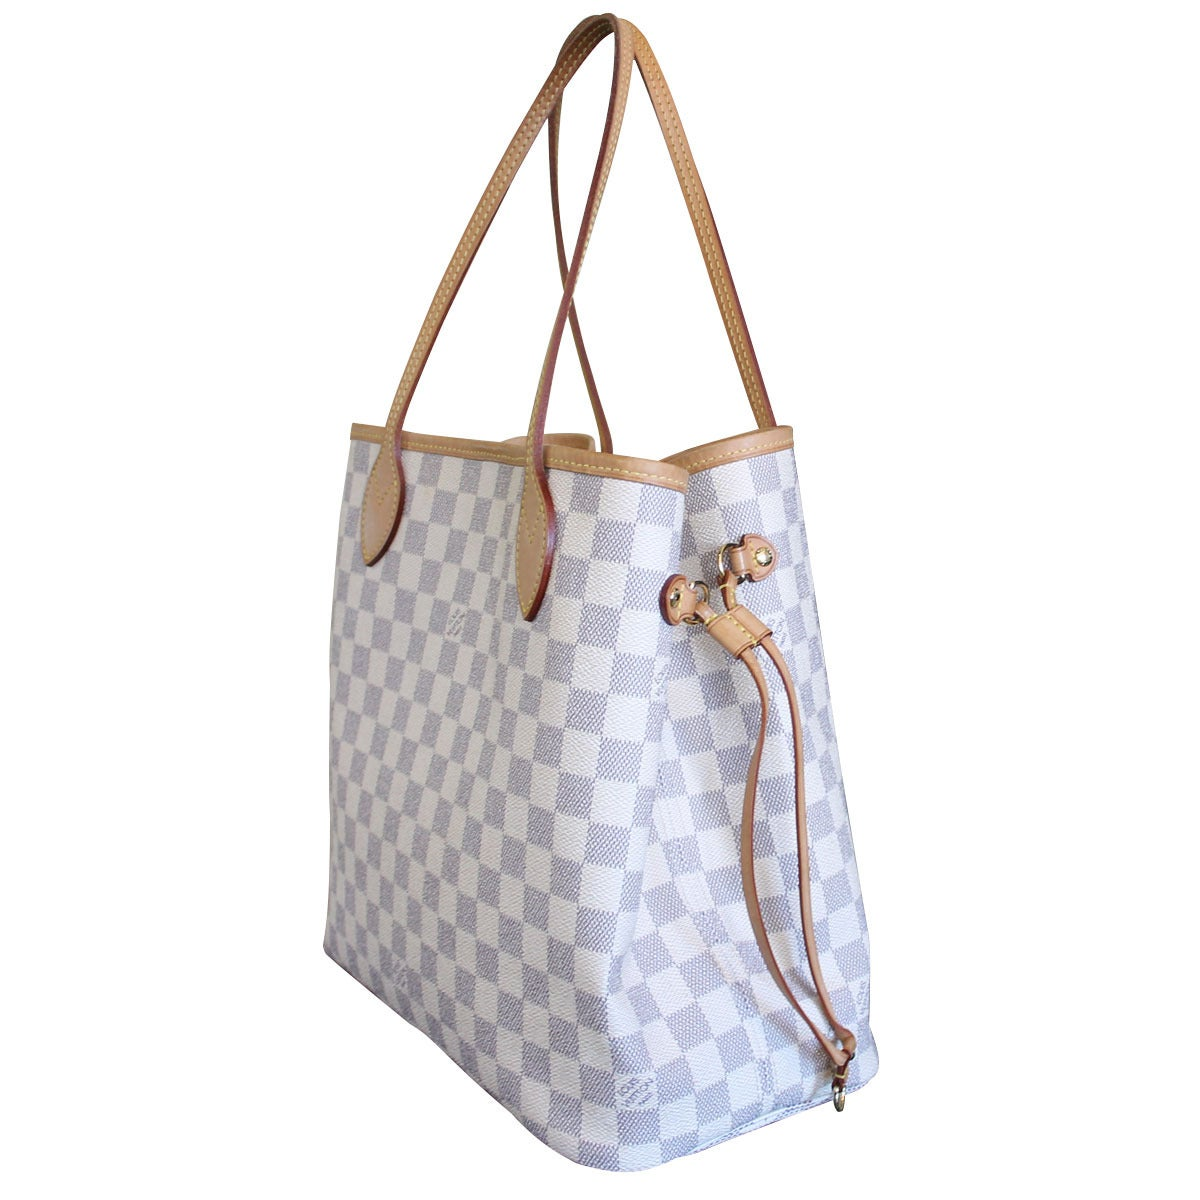 Louis Vuitton Neverfull MM Damier Azur Canvas Handbag Tote 3